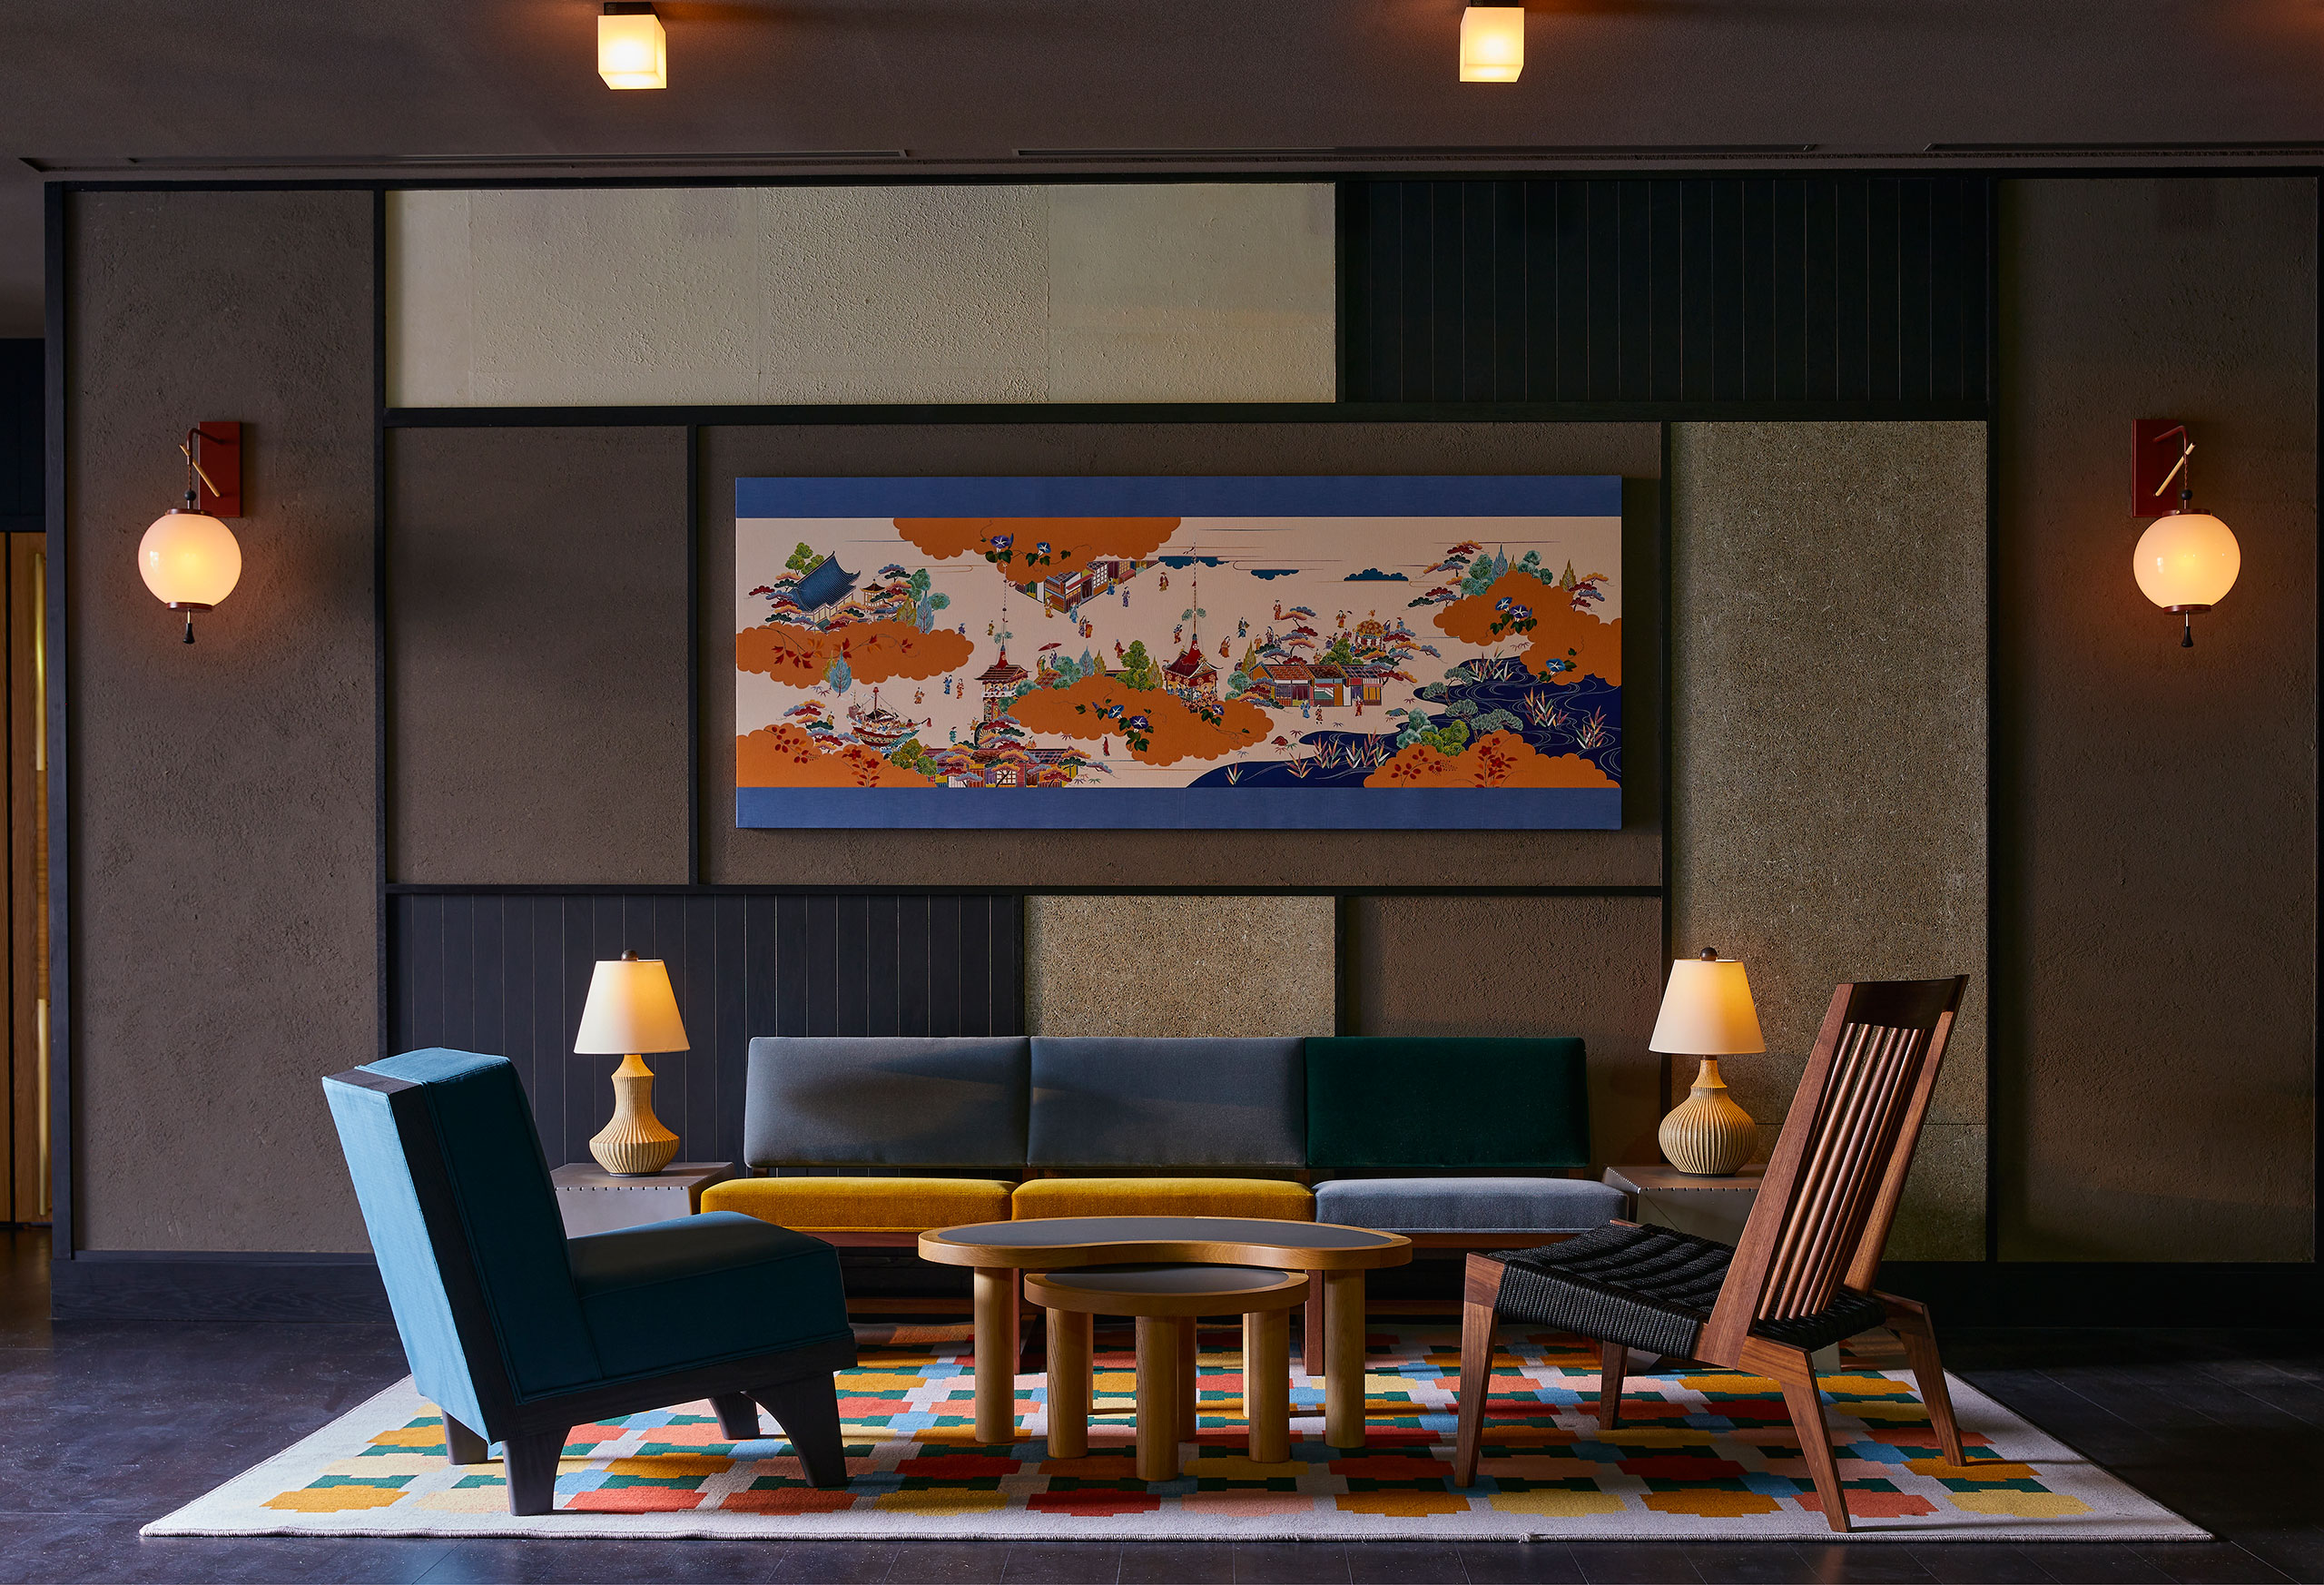 Ace Hotel Kyoto. Pre-function room. Photo by Yoshihiro Makino.